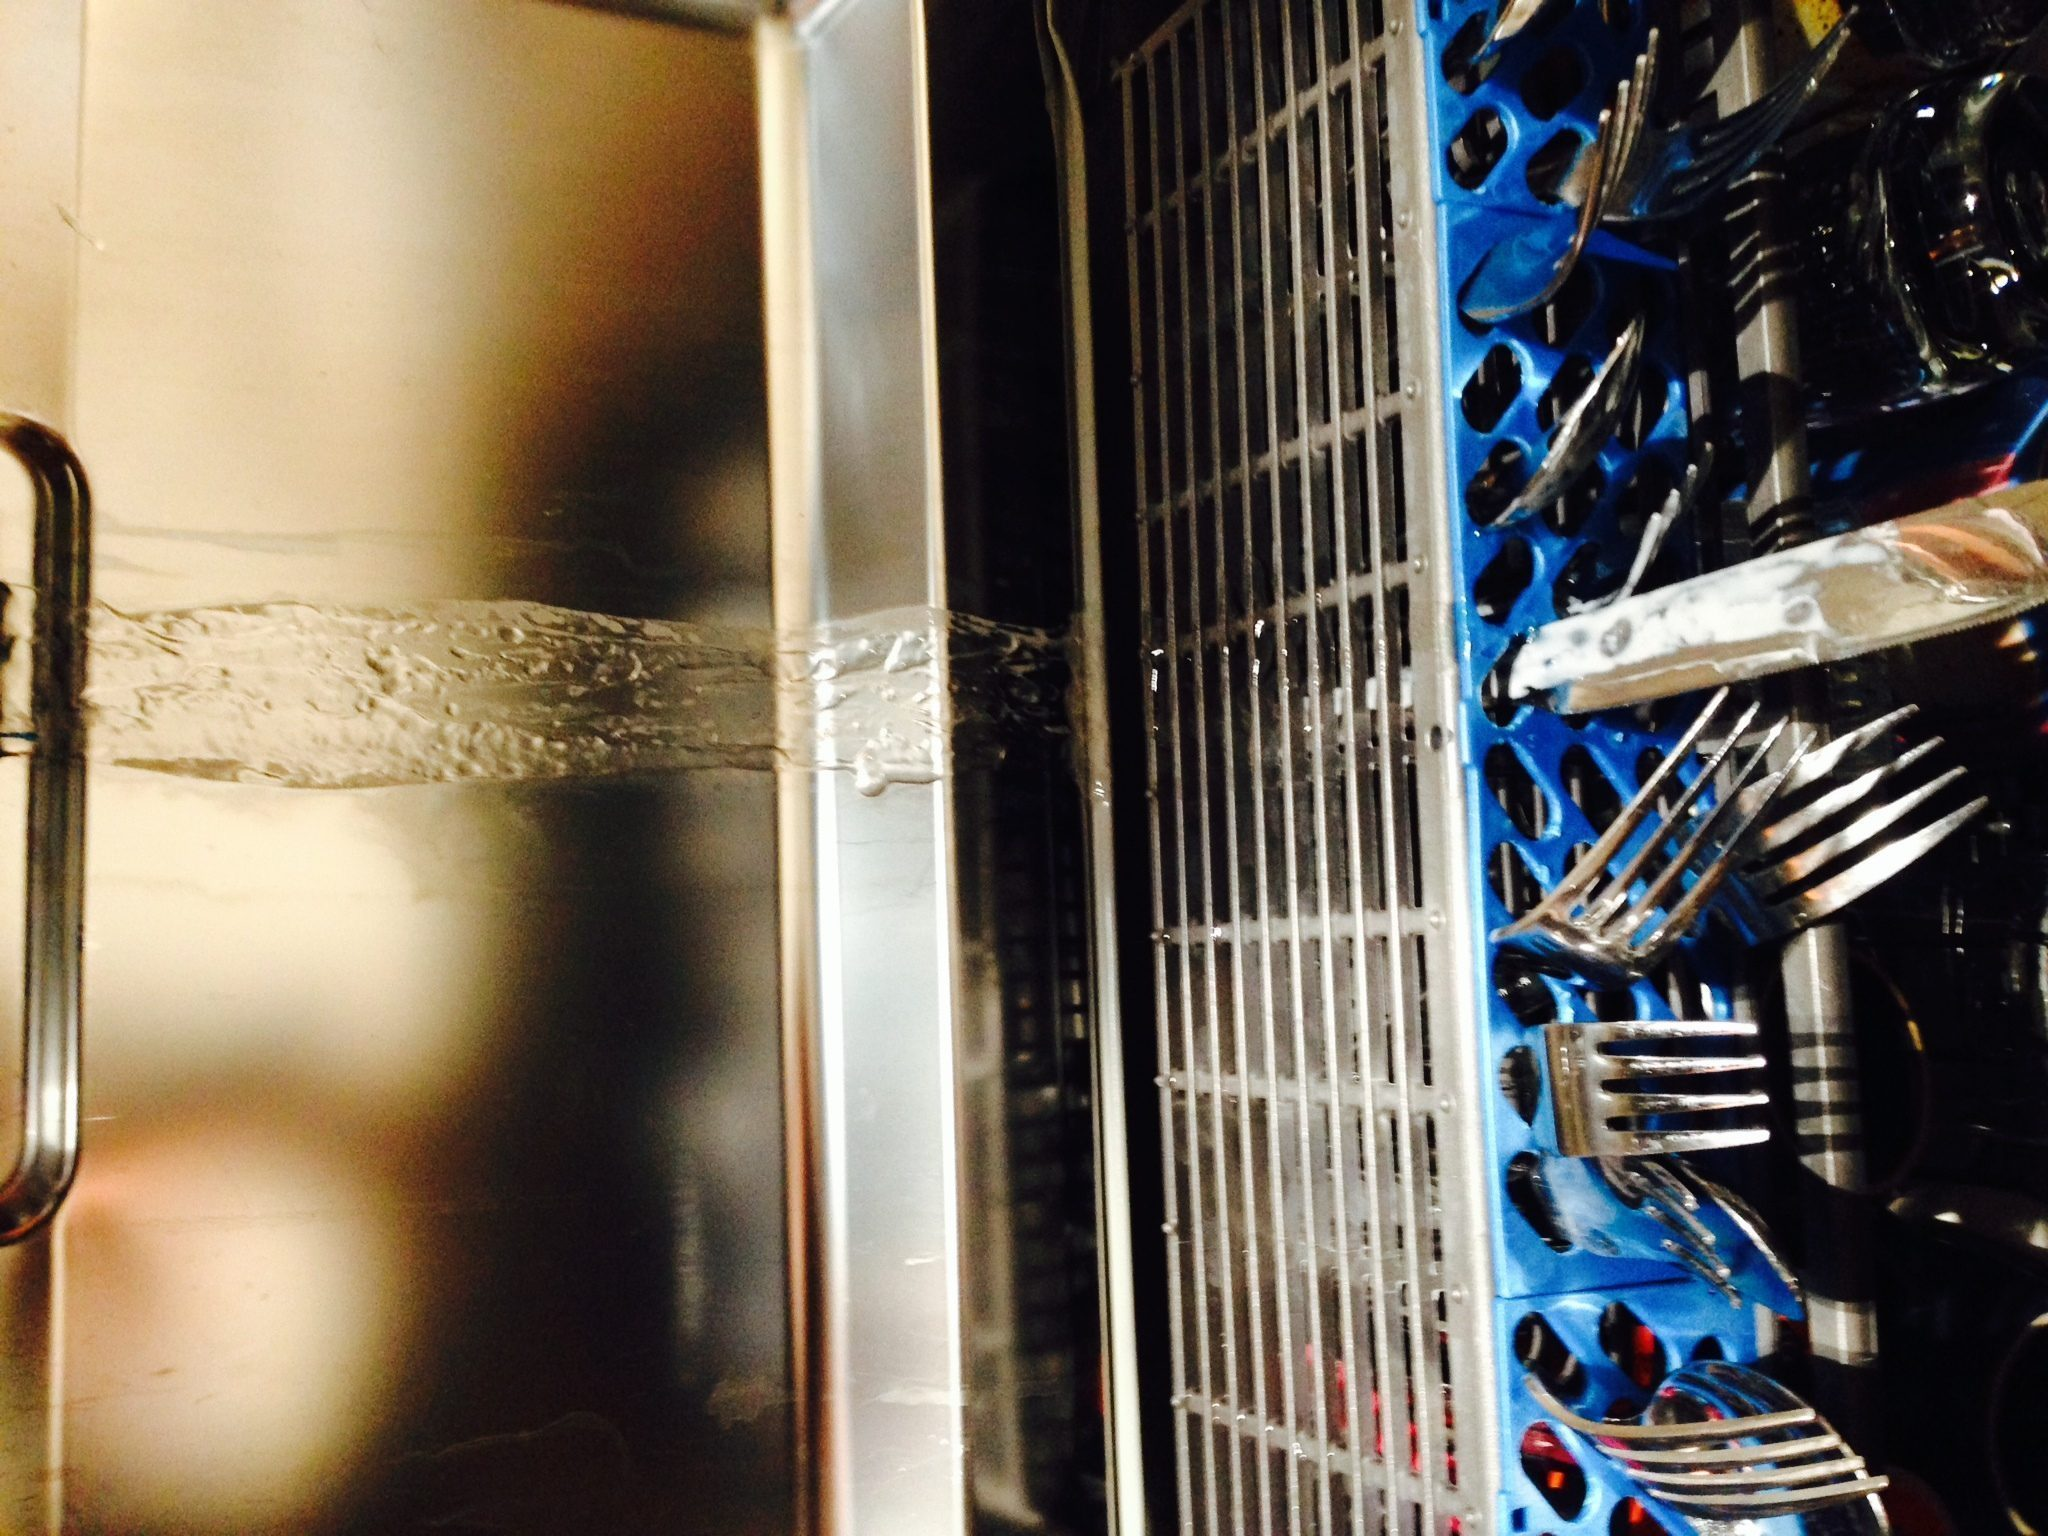 Ge Appliance Repair Kansas City Top 483 Reviews And Complaints About Ge Dishwashers Page 7